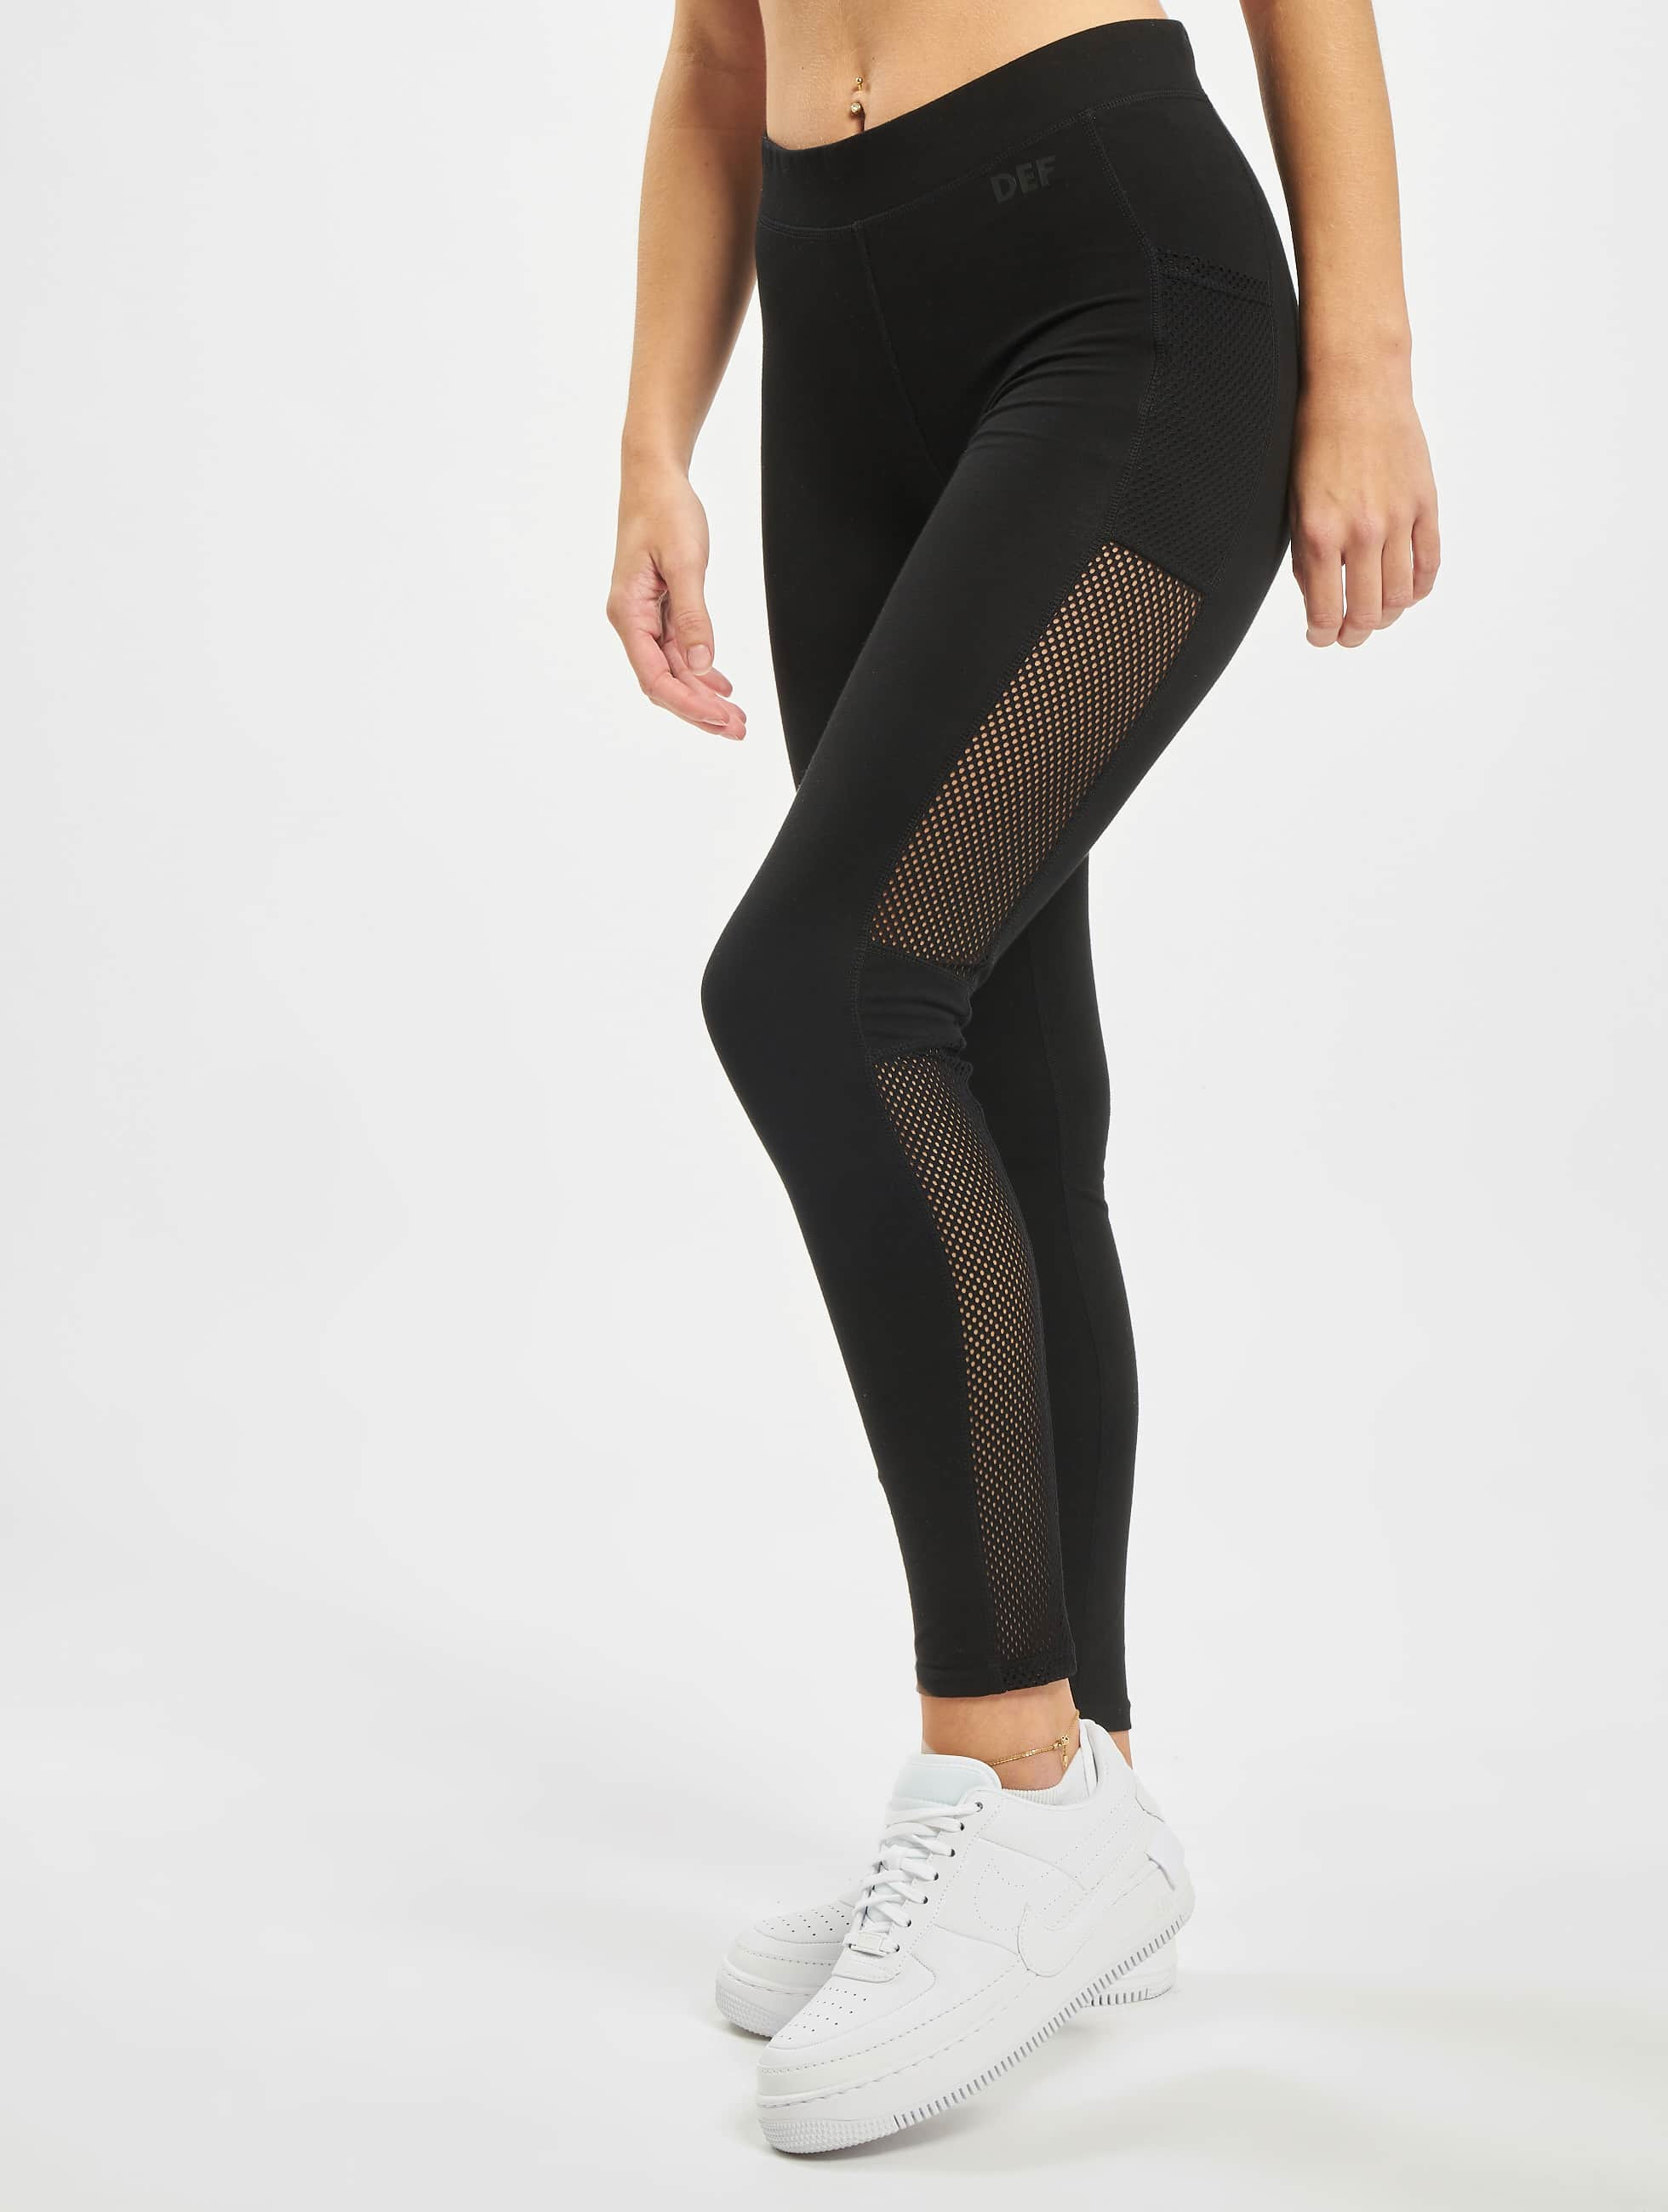 DEF / Legging/Tregging Kiana in black XS